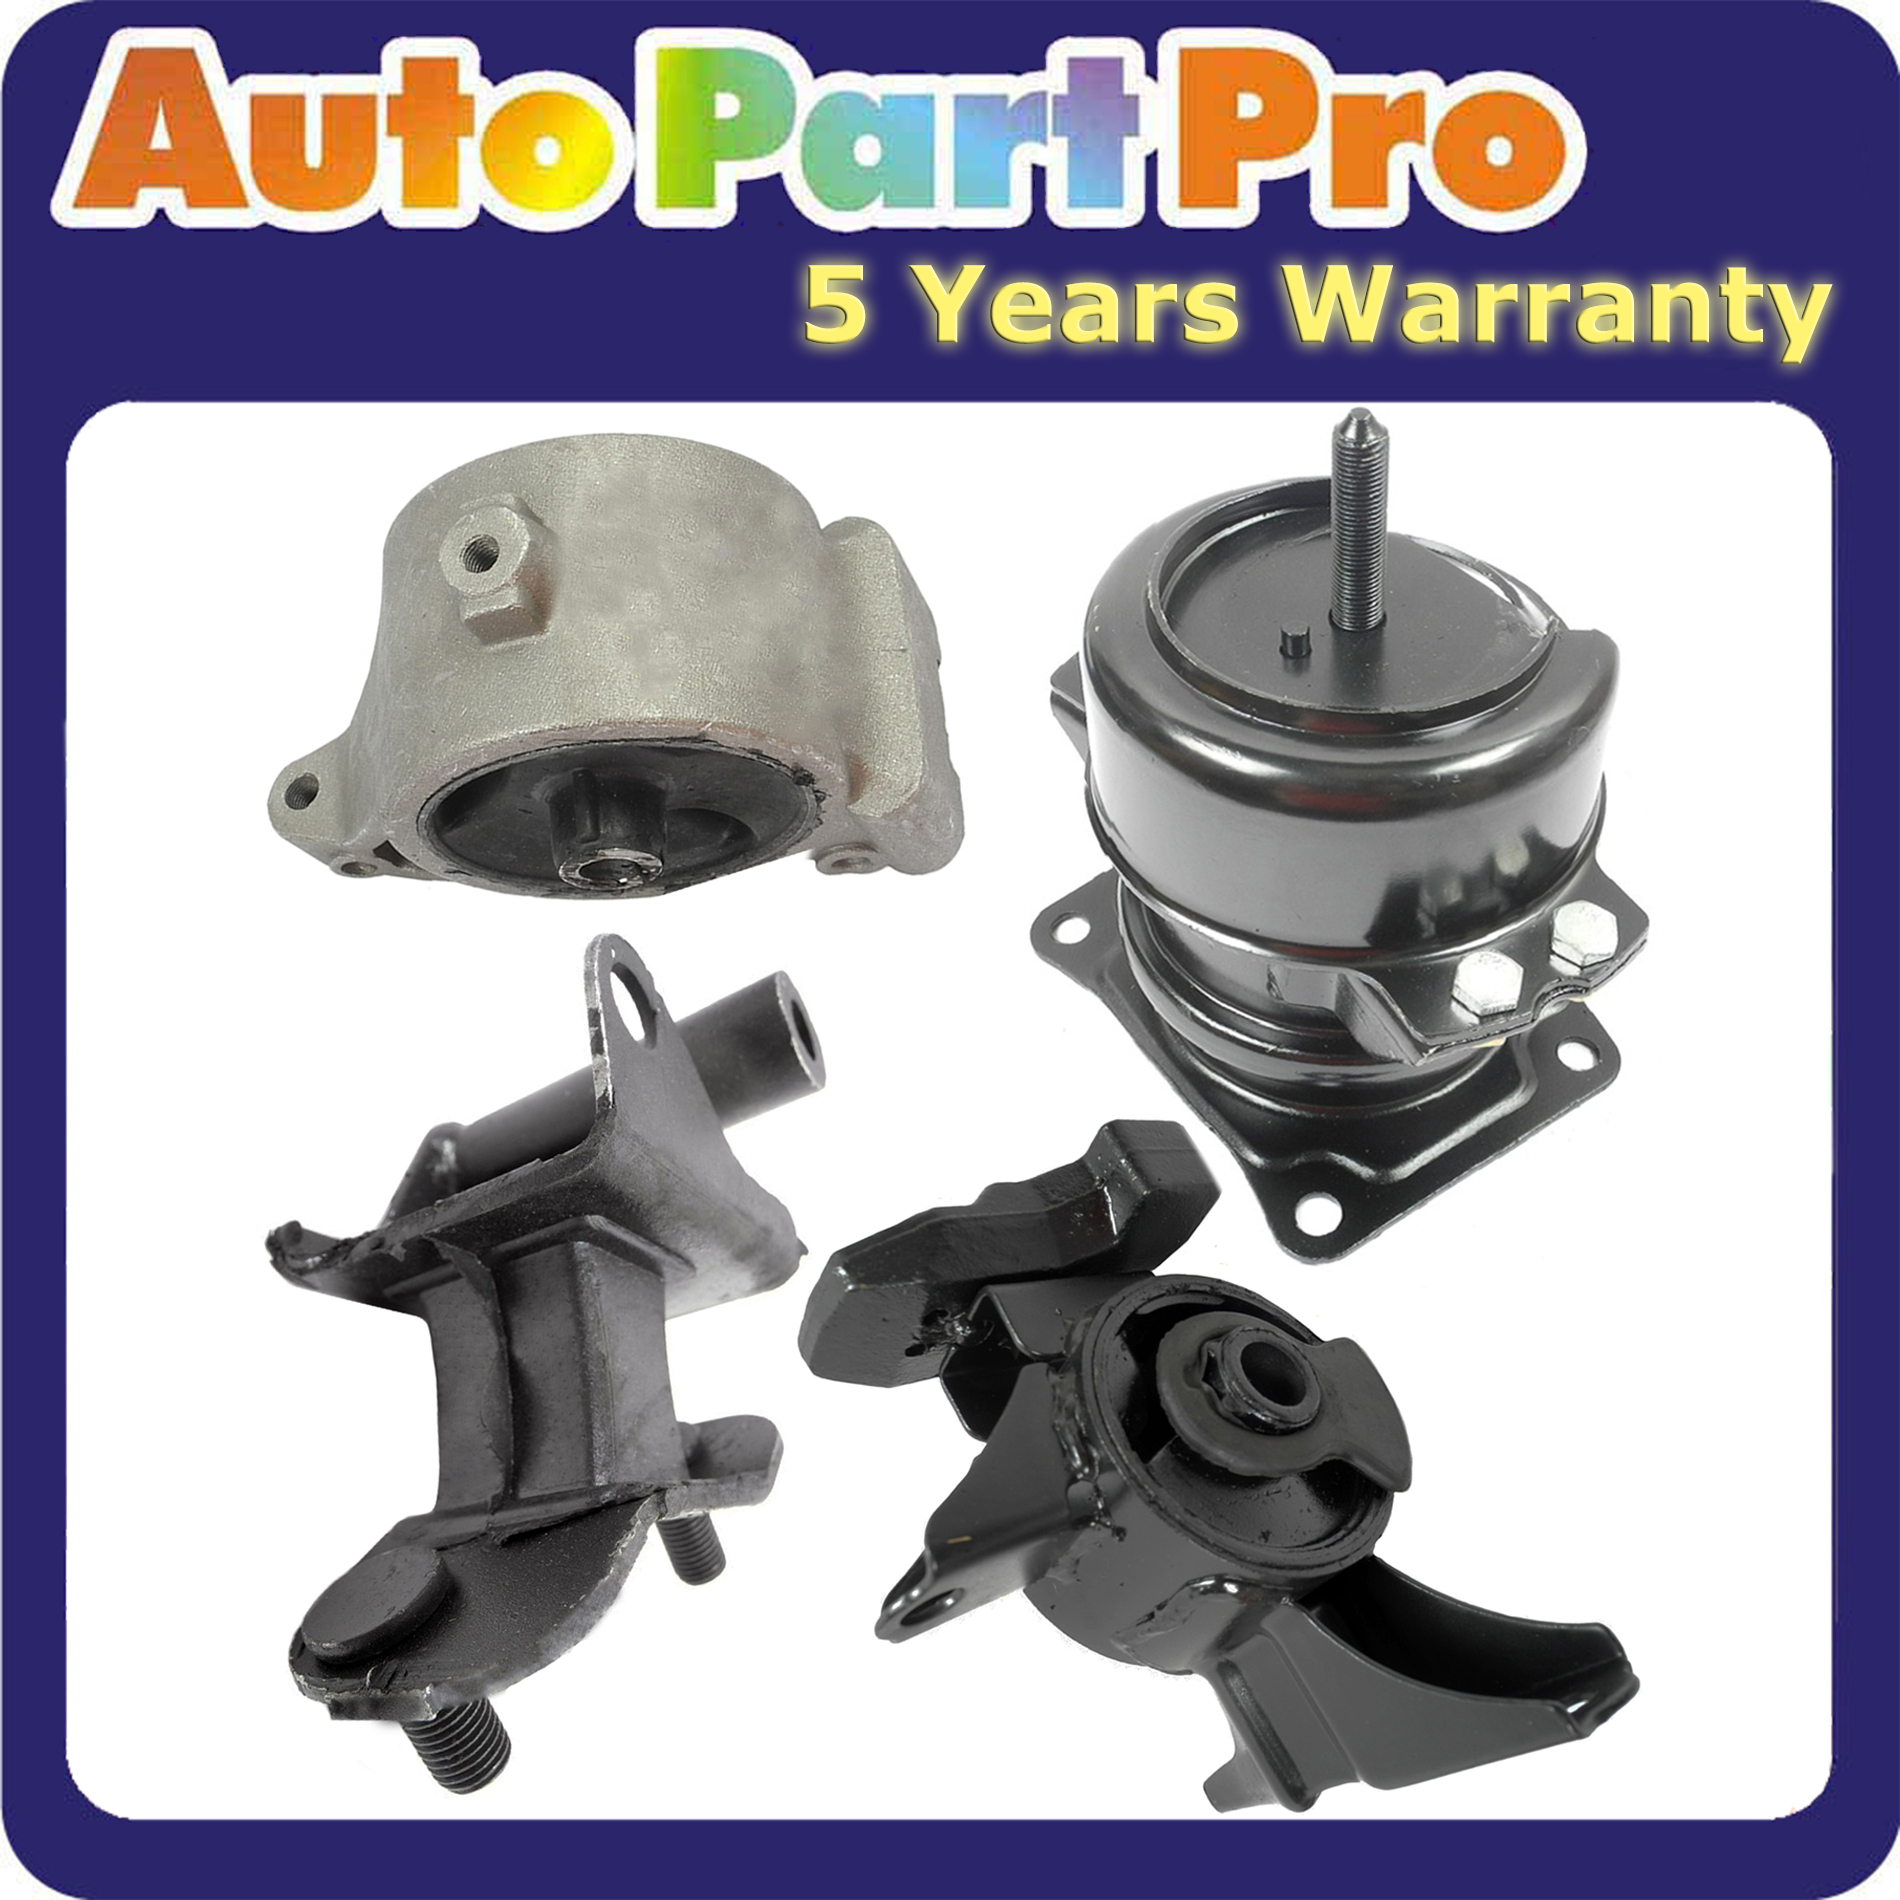 For 2003-2006 Acura MDX 3.5L Engine Motor & Trans Mount